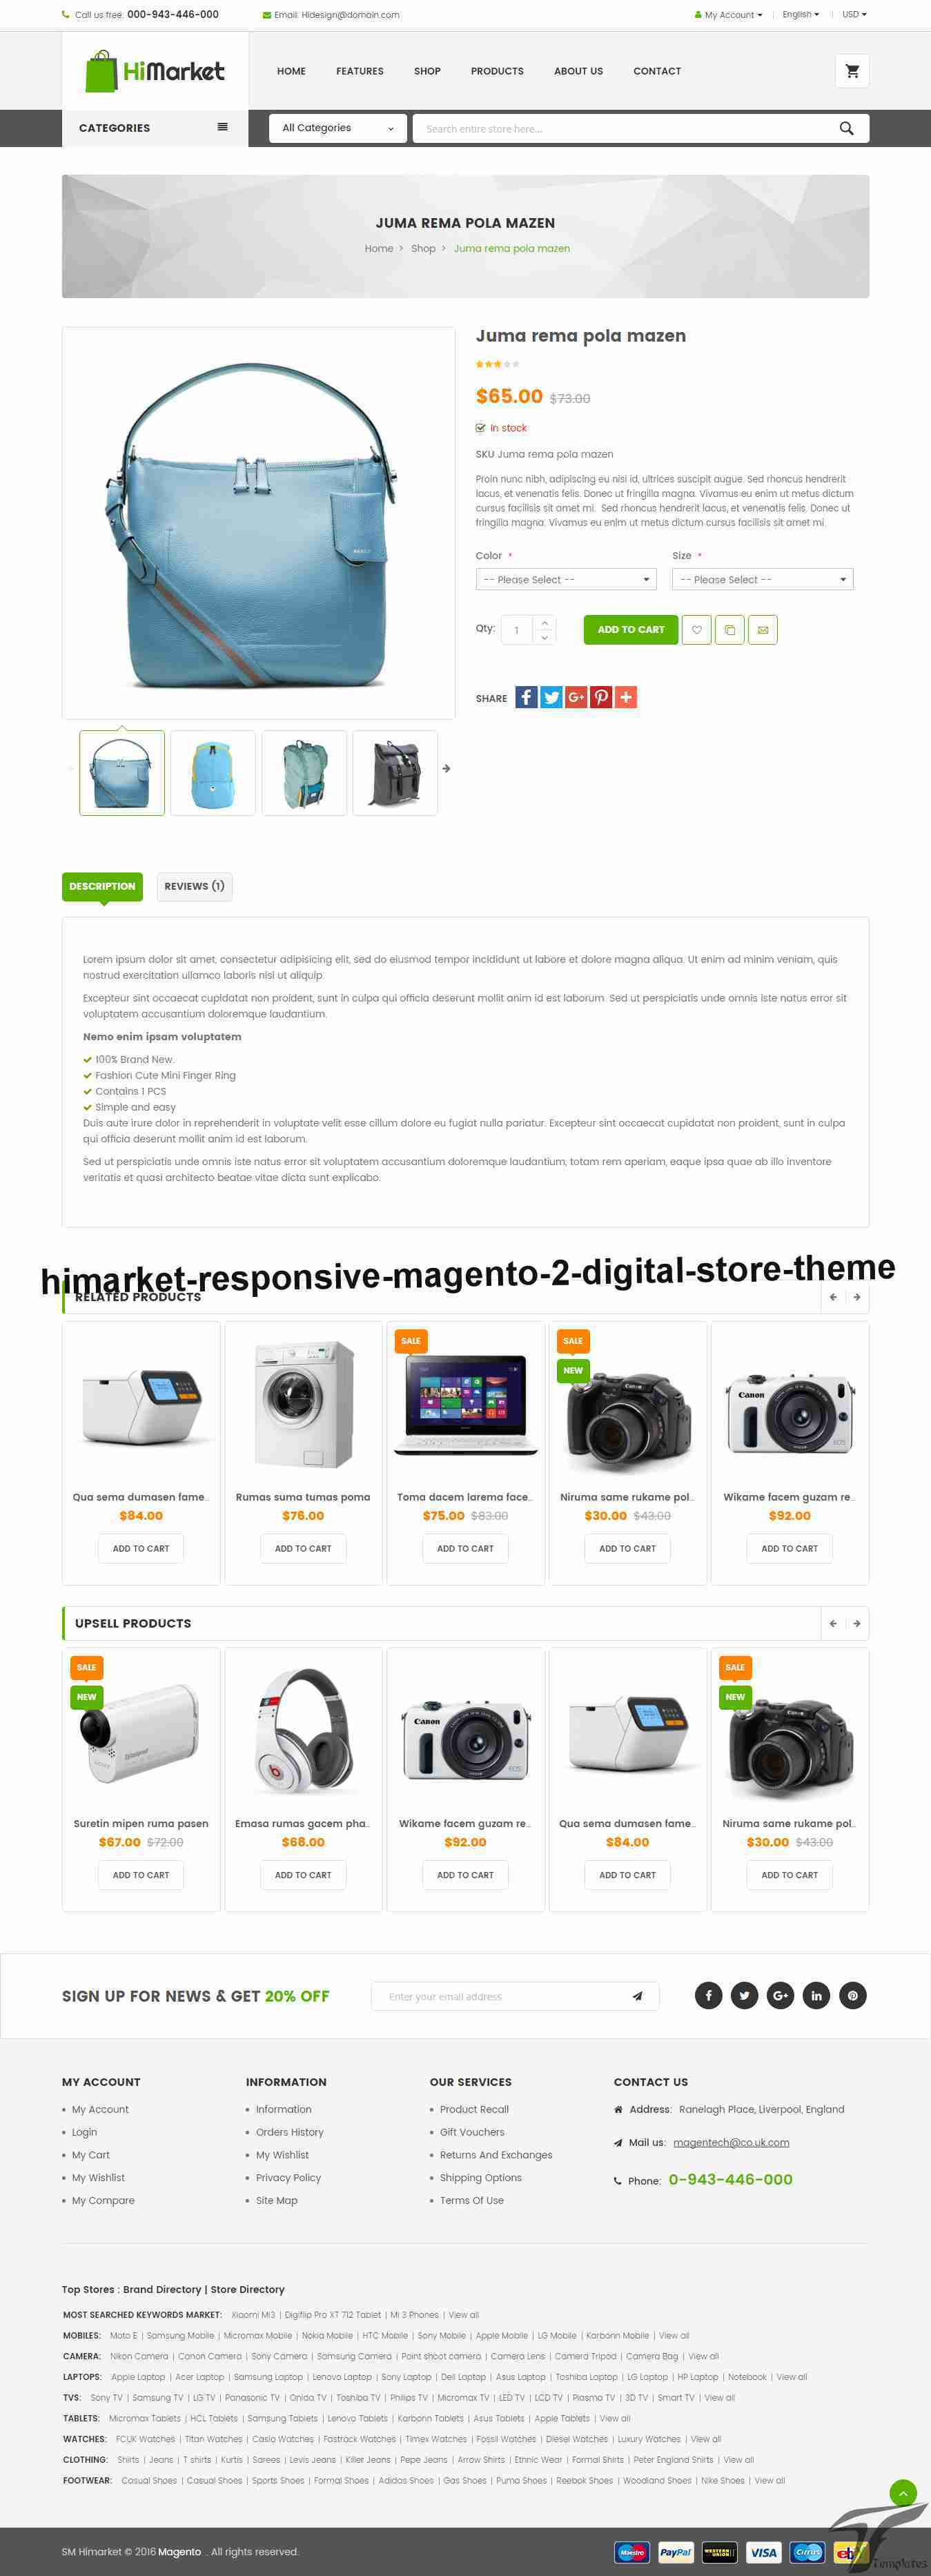 https://images.besthemes.com/images/h1_himarket-responsive-magento-2-digital-store-theme7-_-199157109/07-detail-page.png